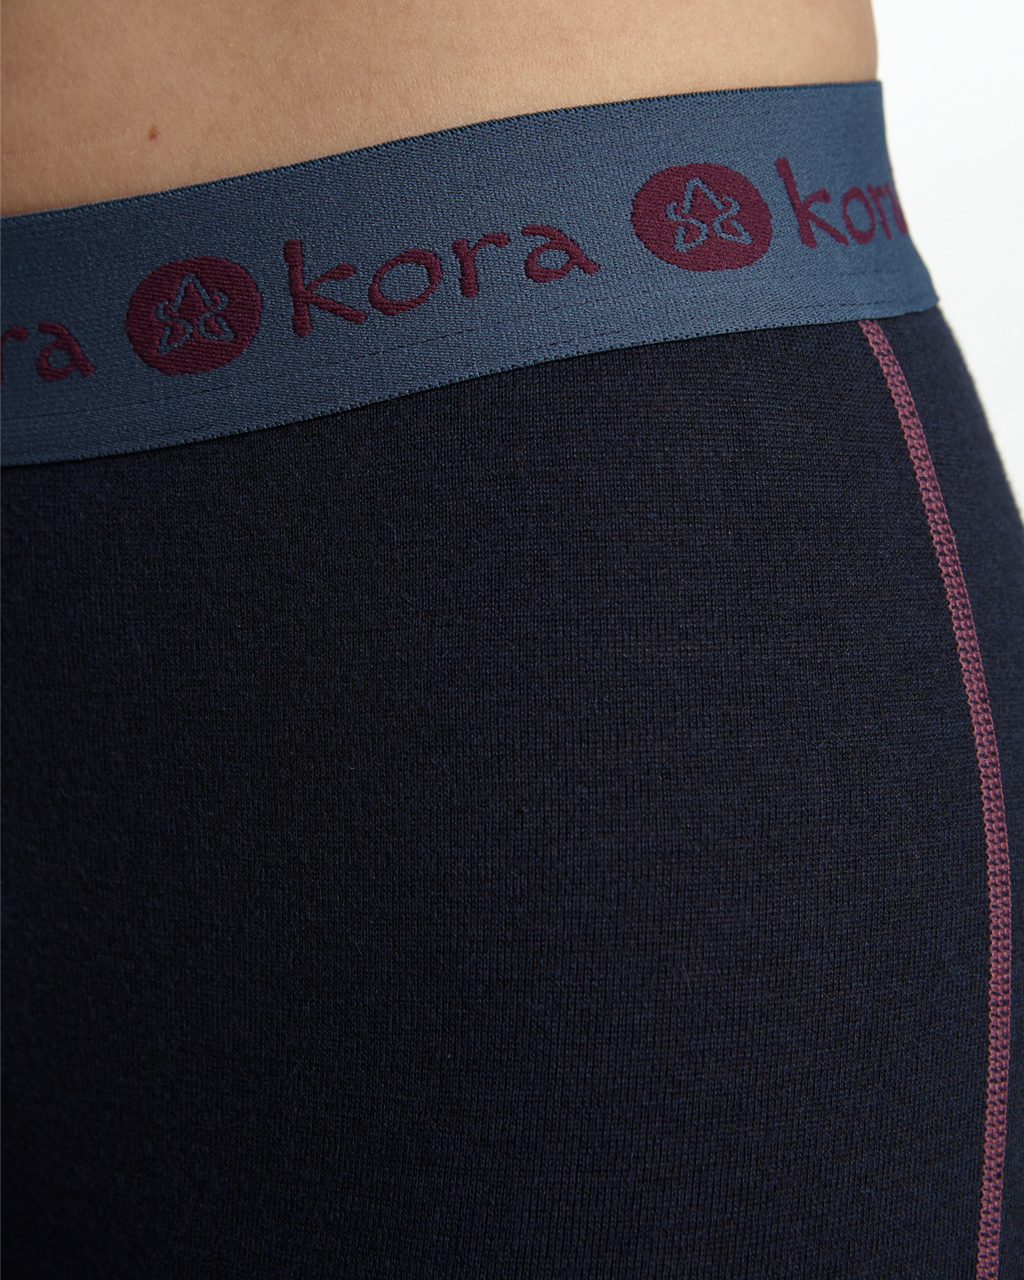 kora-shola230leggings-womens-9